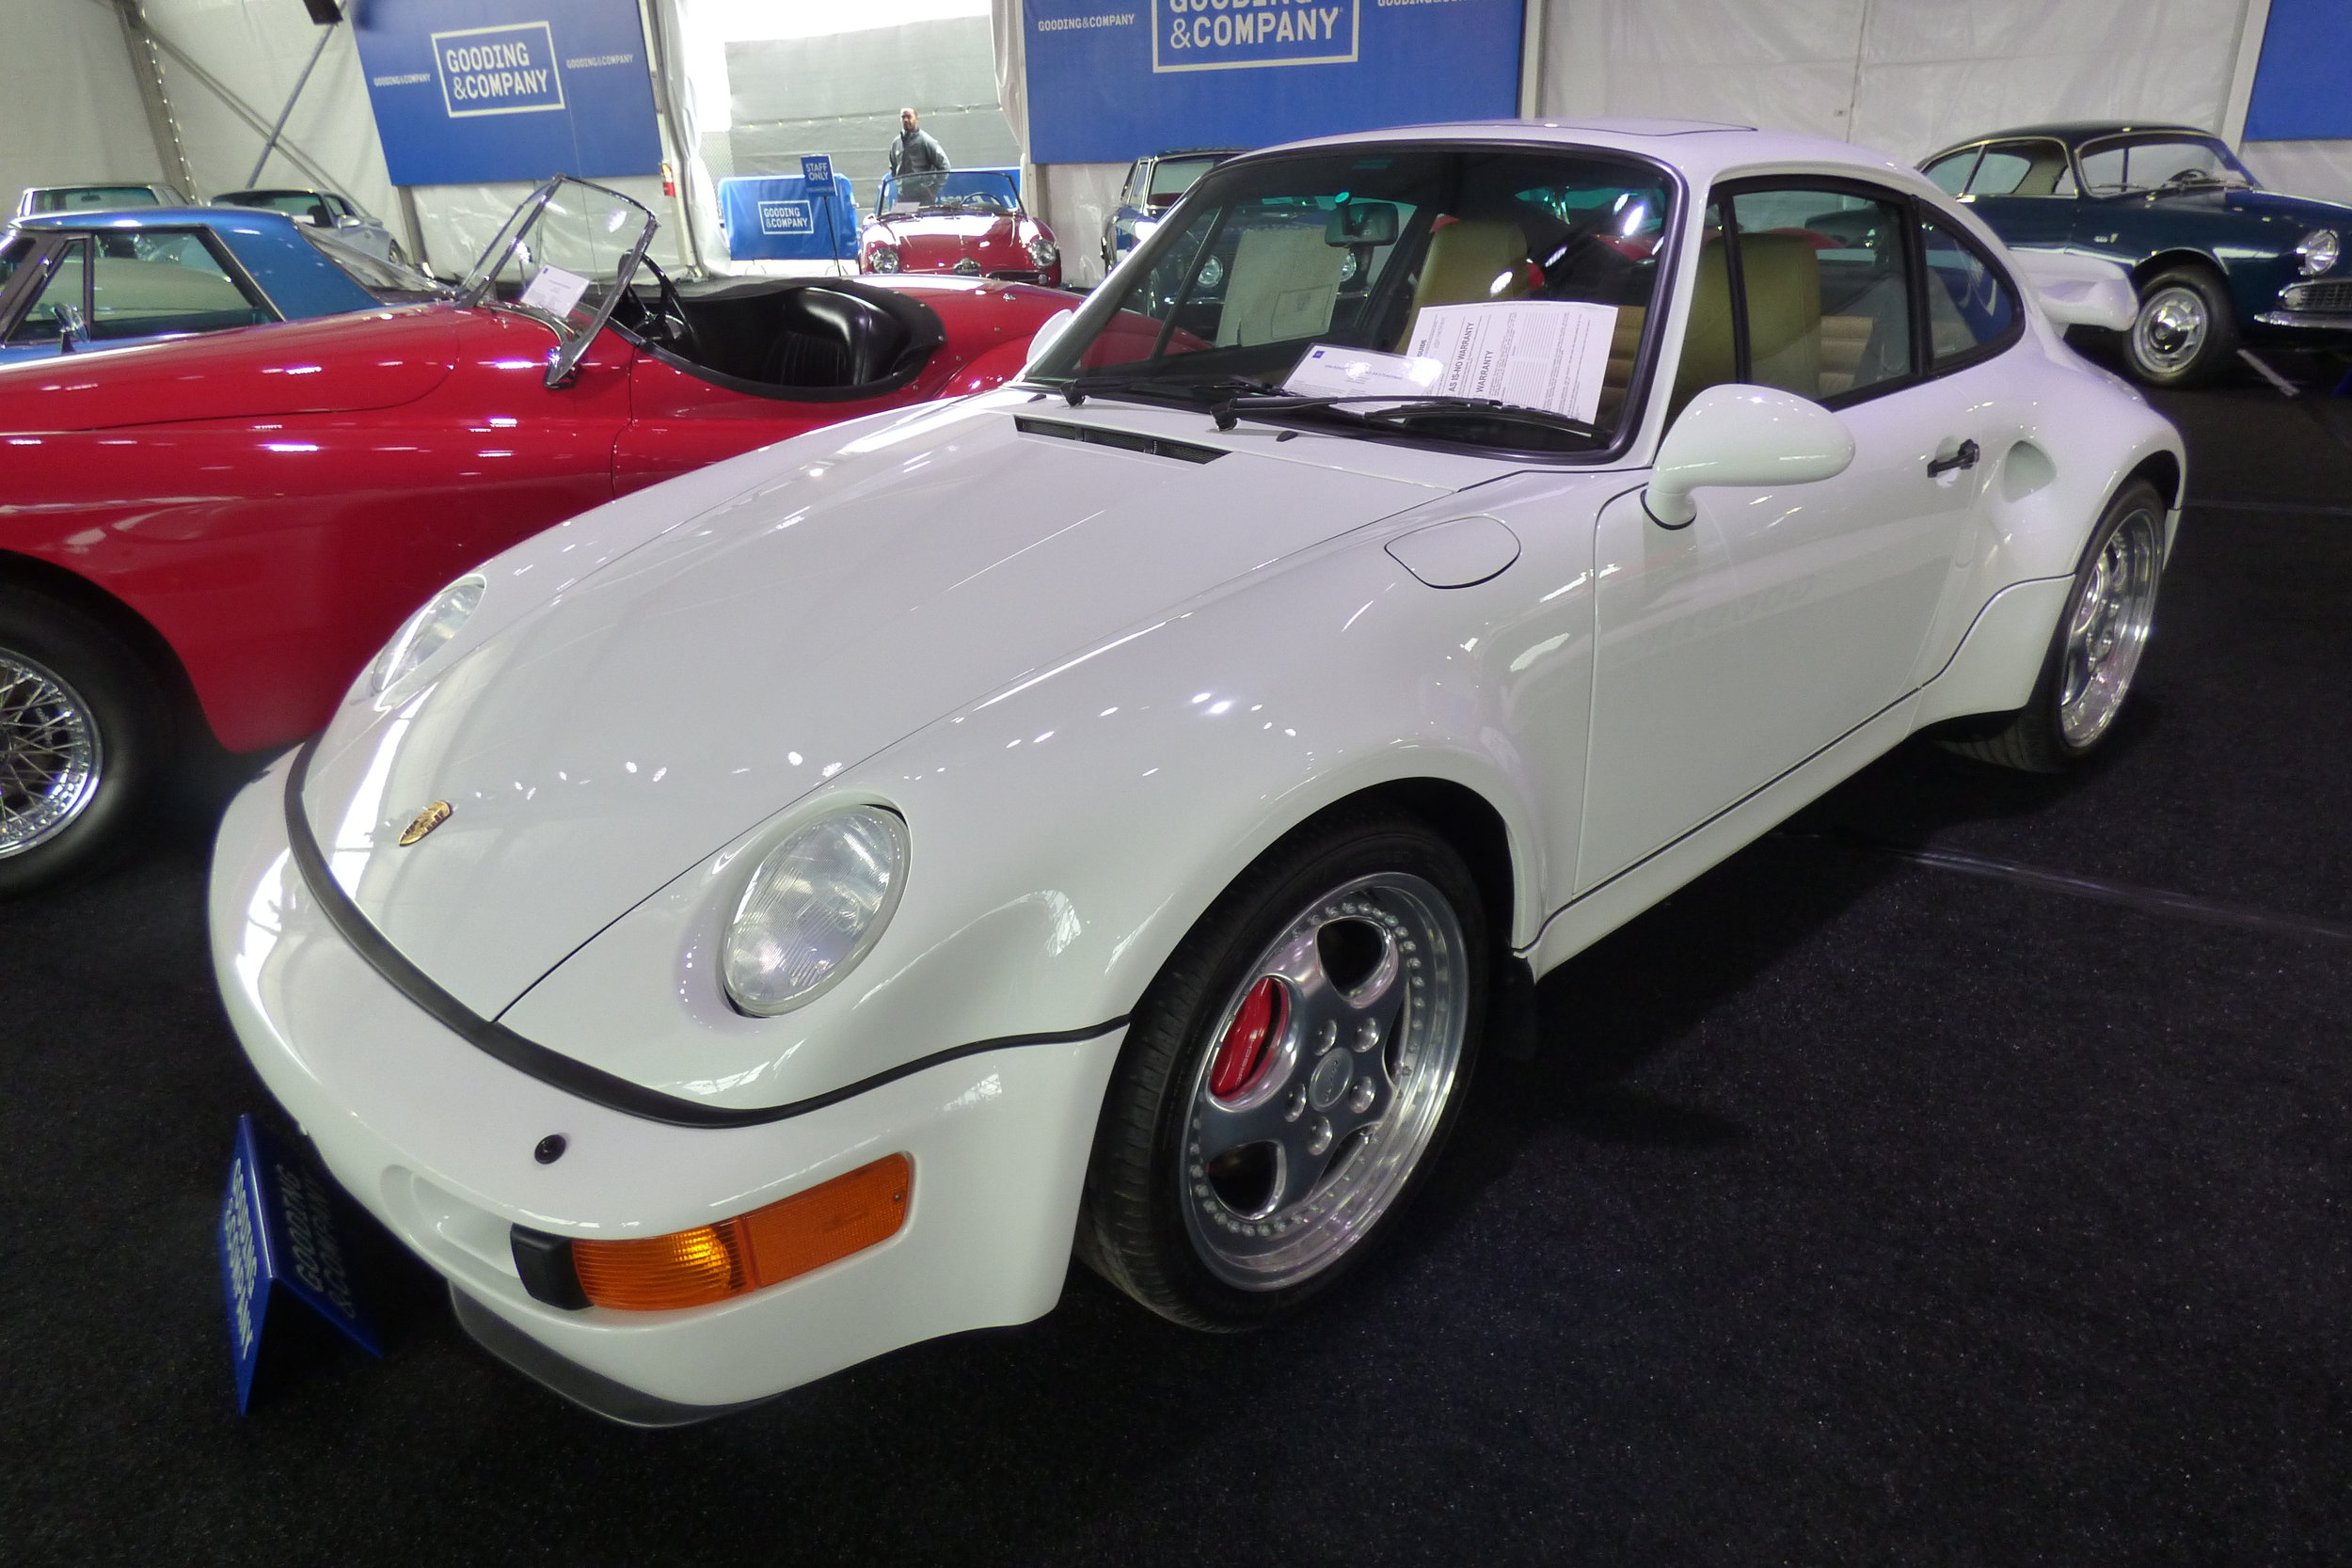 """The fabled """"Time-Capsule Condition"""" 1994 Porsche 964 Turbo 3.6 S Flachbau. Sold for $1,100,000."""